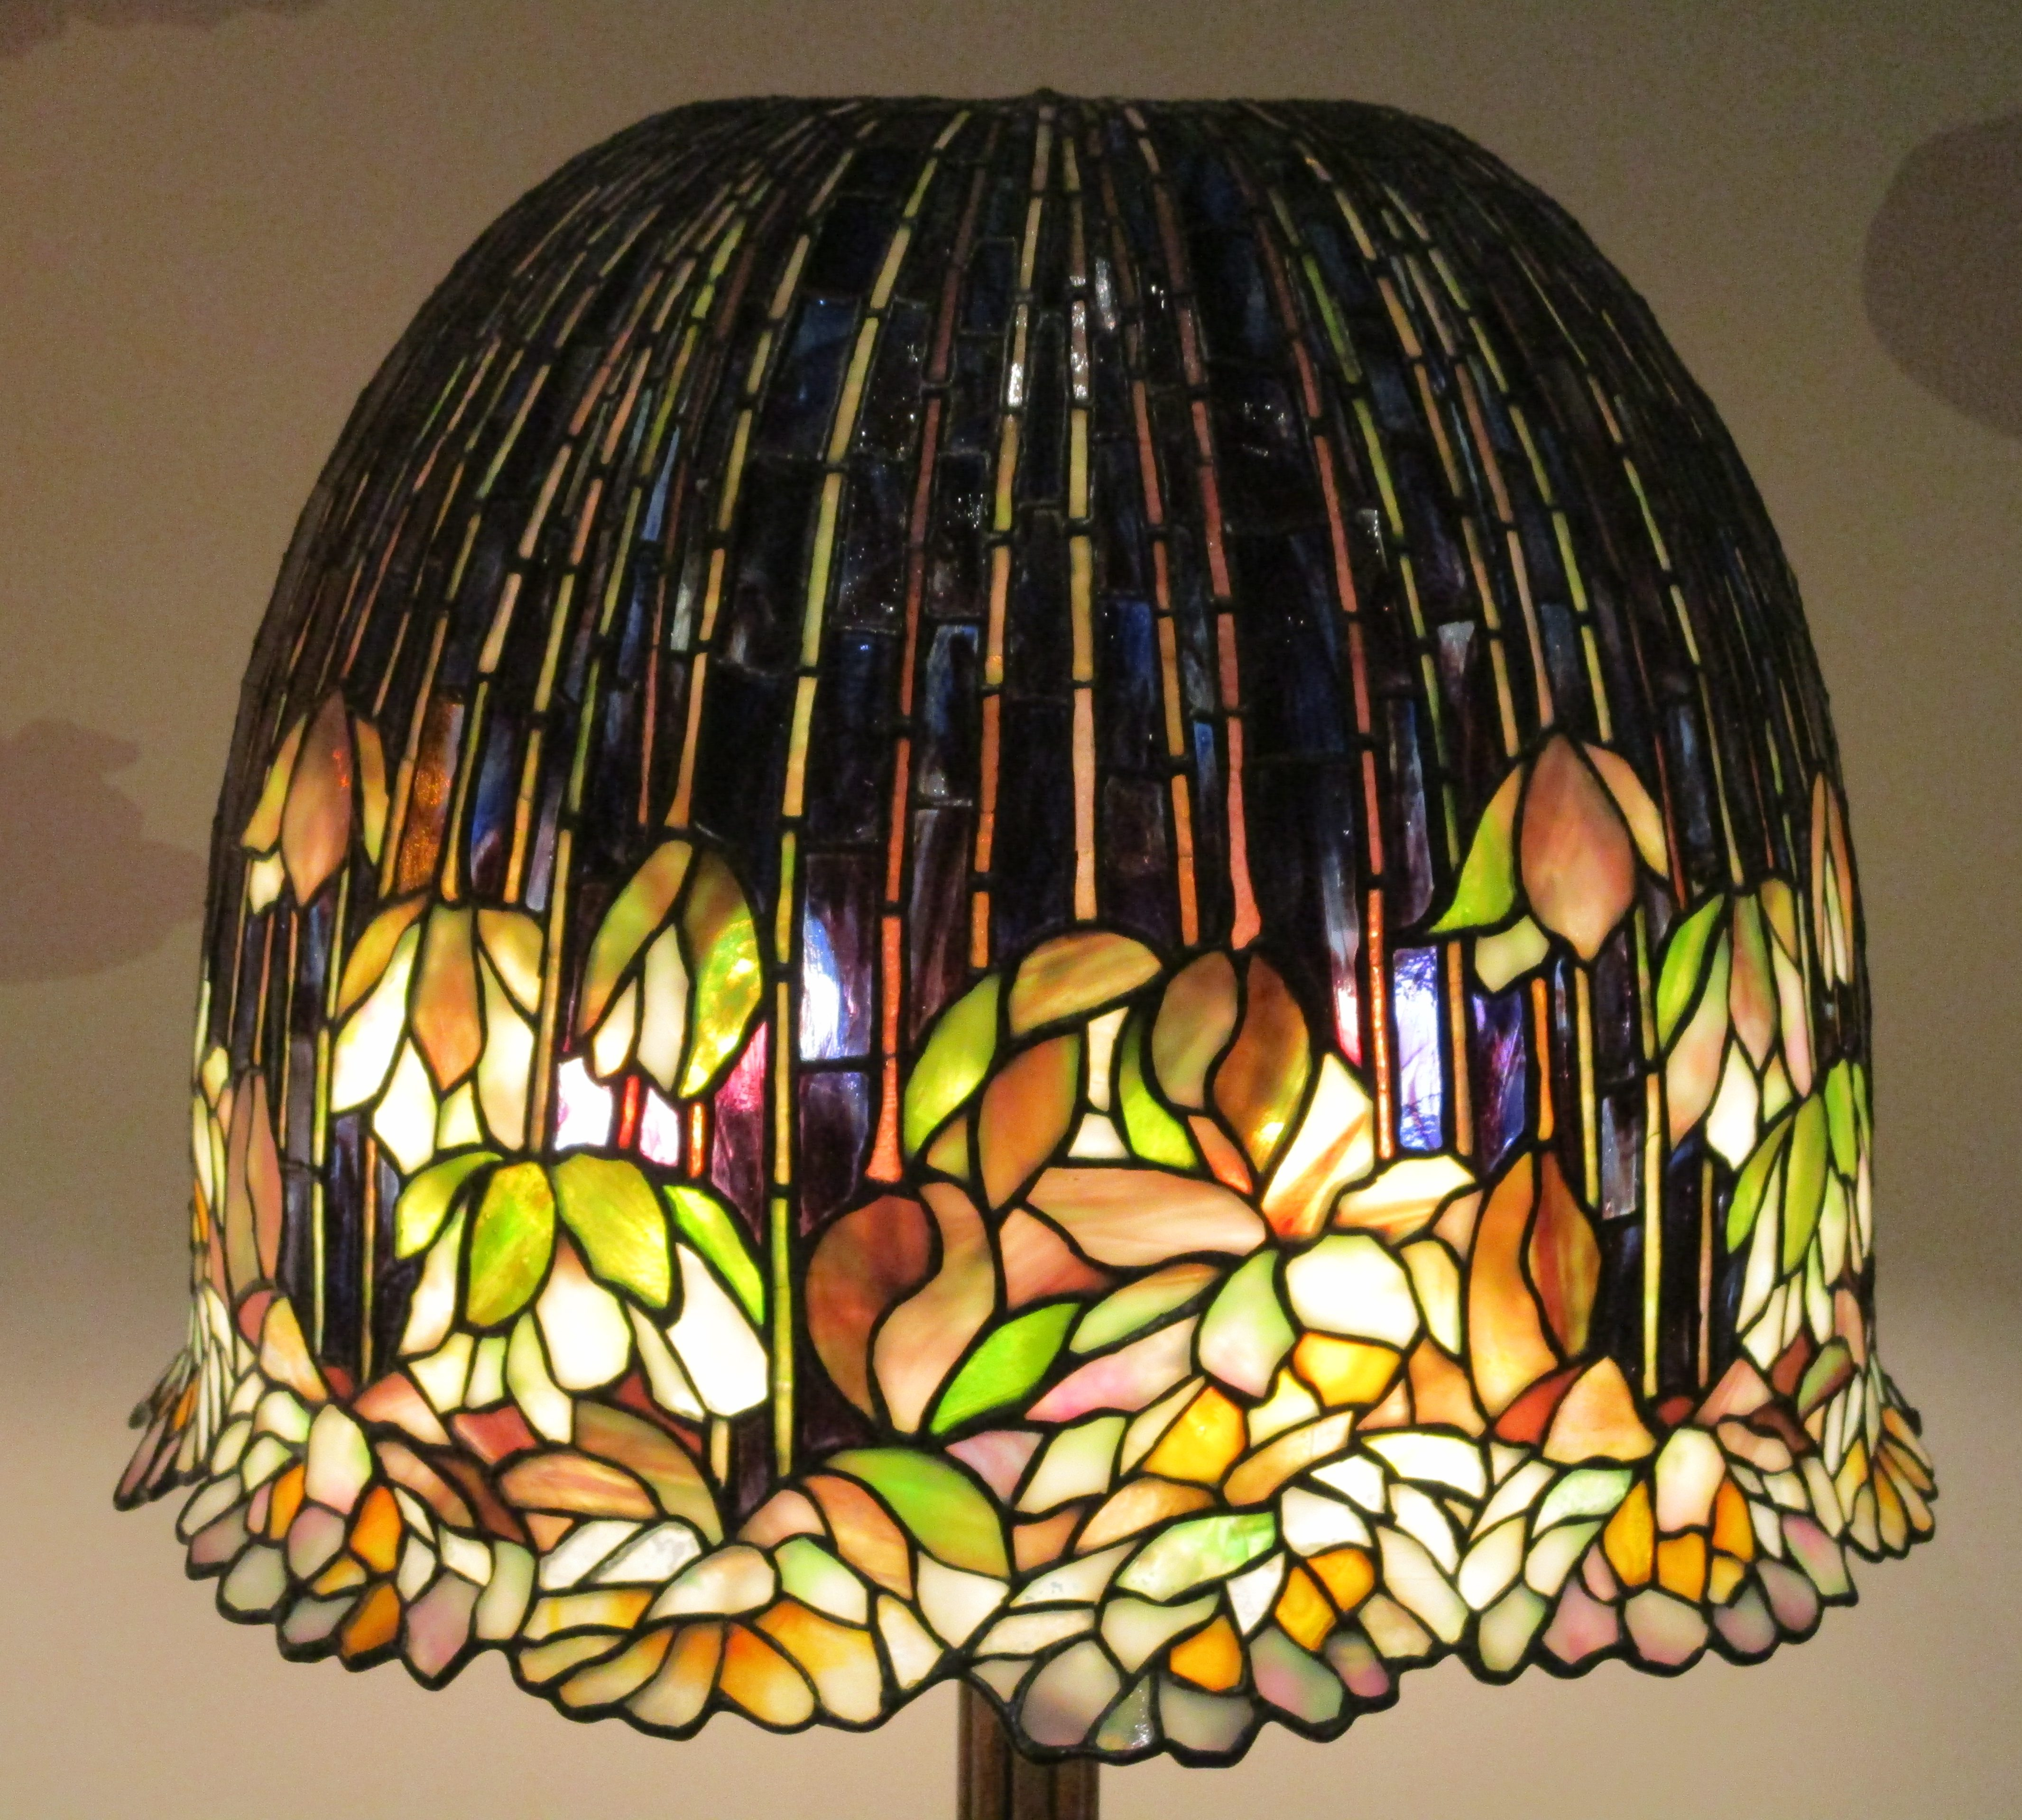 Tiffany glass the worley gig pond lily library lamp shade detail mozeypictures Gallery